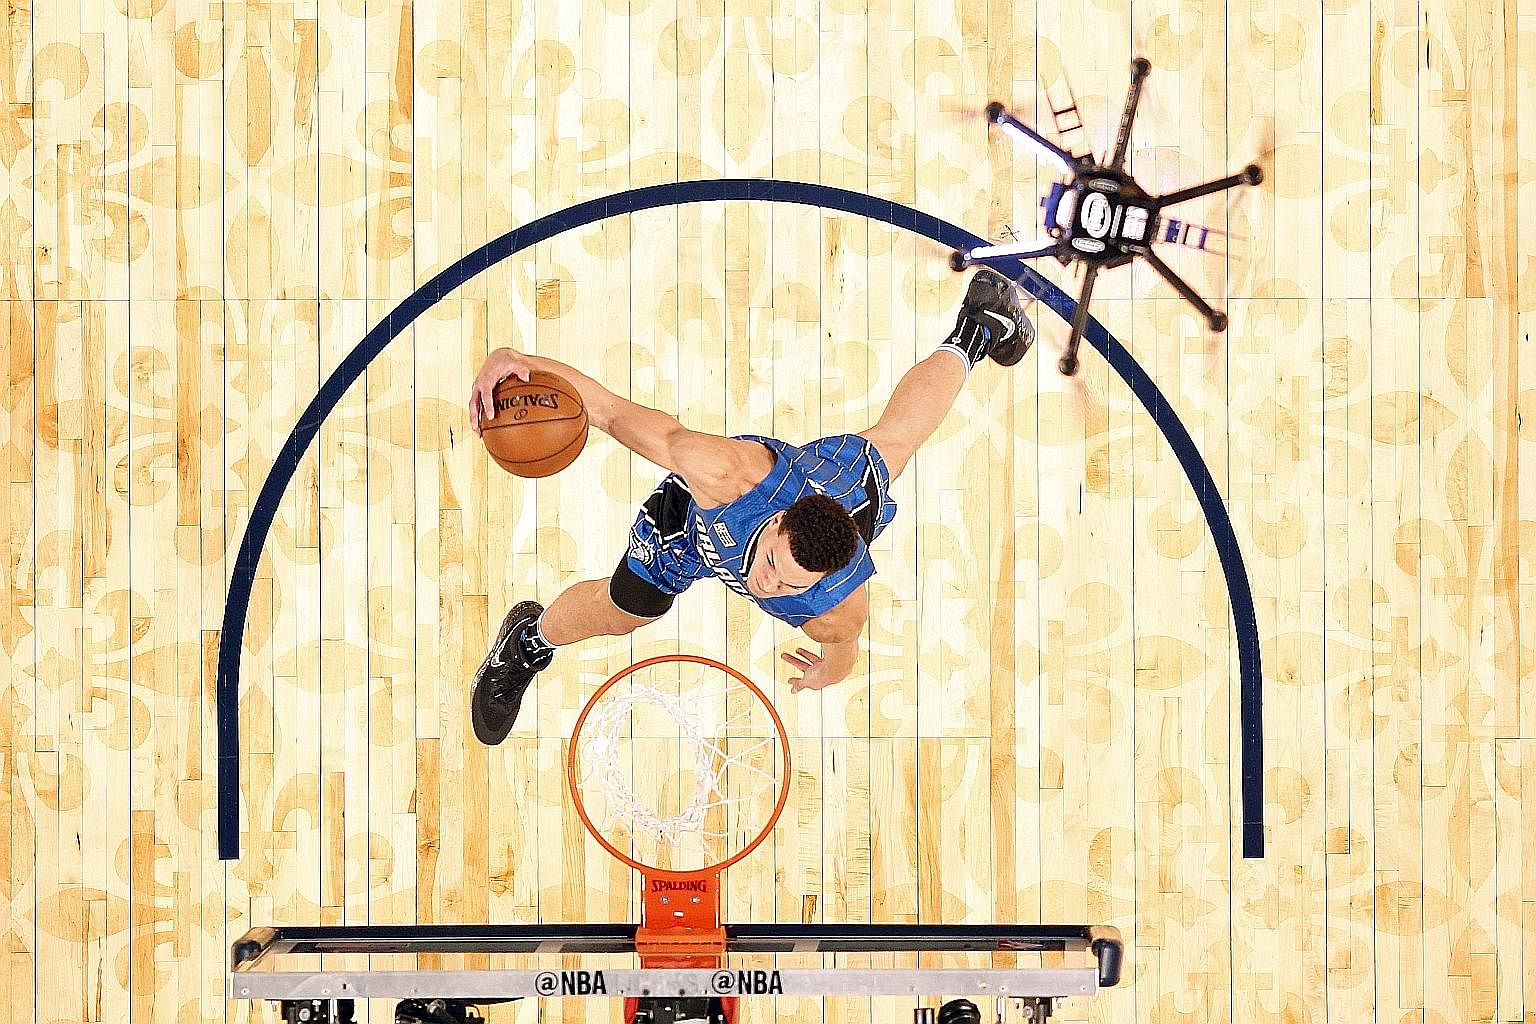 Orlando Magic forward Aaron Gordon attempting a dunk with a ball dropped by a drone in a slam dunk contest during the NBA All-Star Saturday Night at Smoothie King Centre in New Orleans on Feb 18.